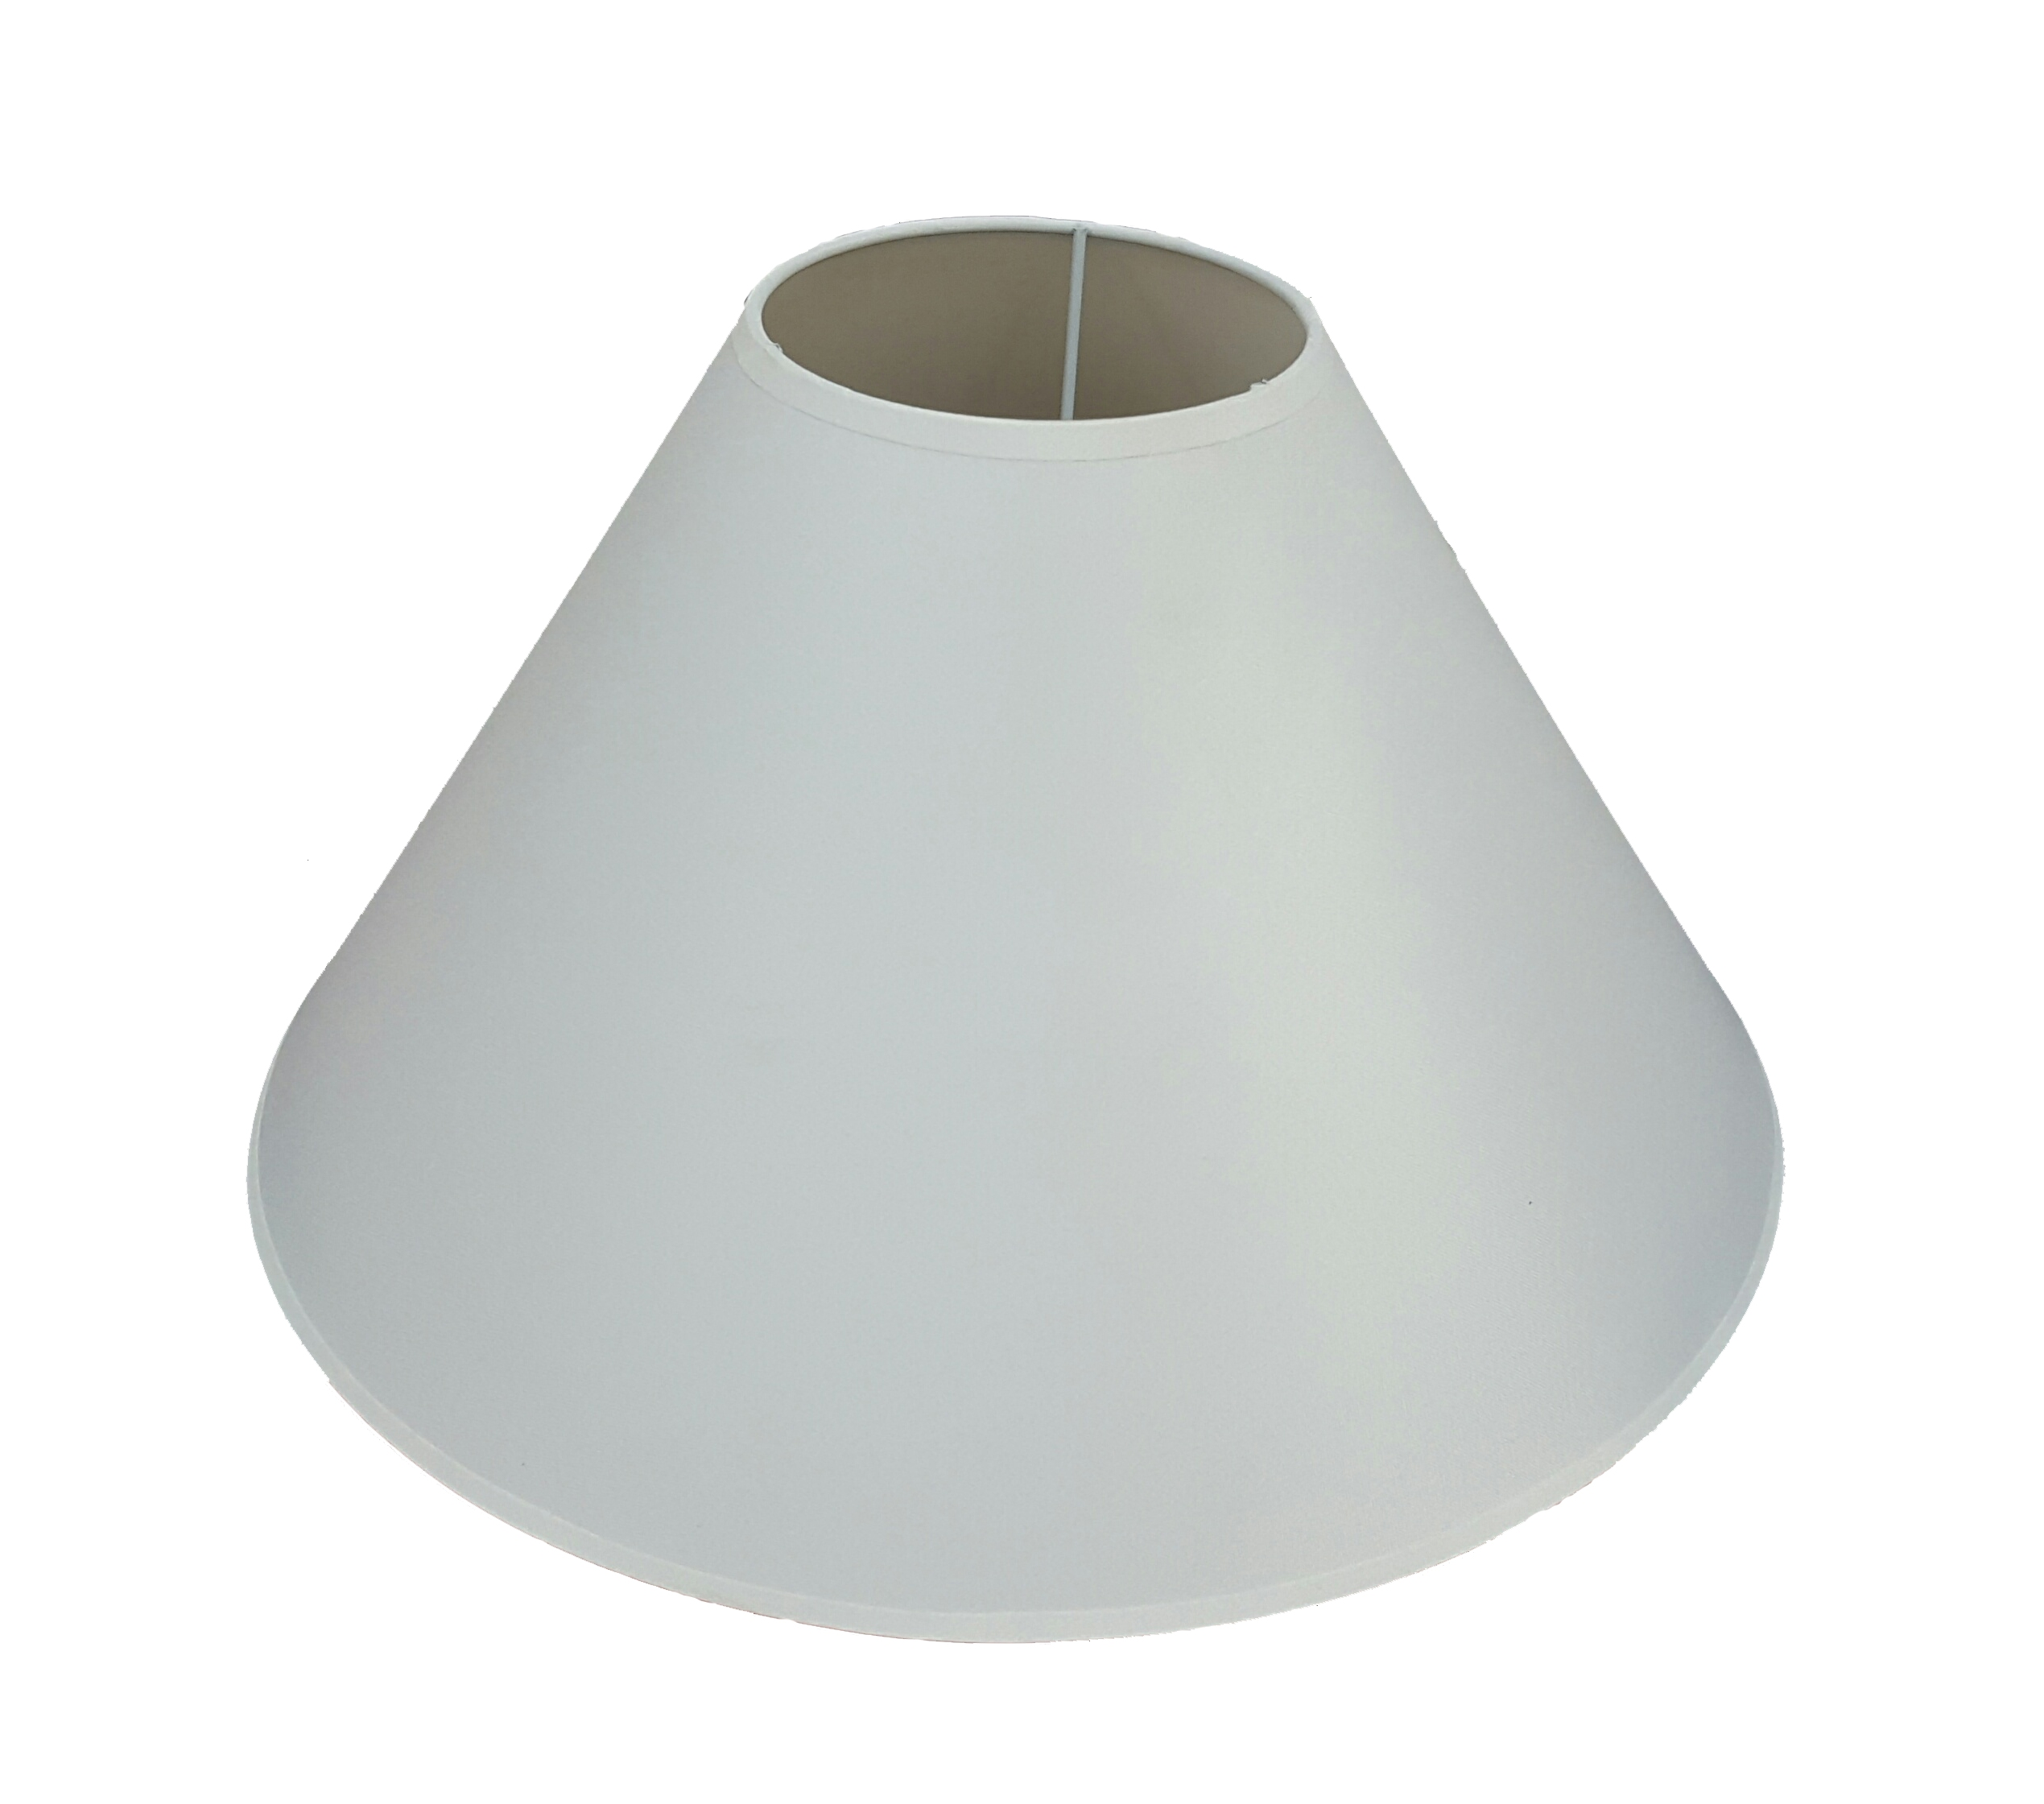 New 16 inch coolie lamp shade versatile stylish available in white new 16 inch coolie lamp shade versatile stylish aloadofball Gallery